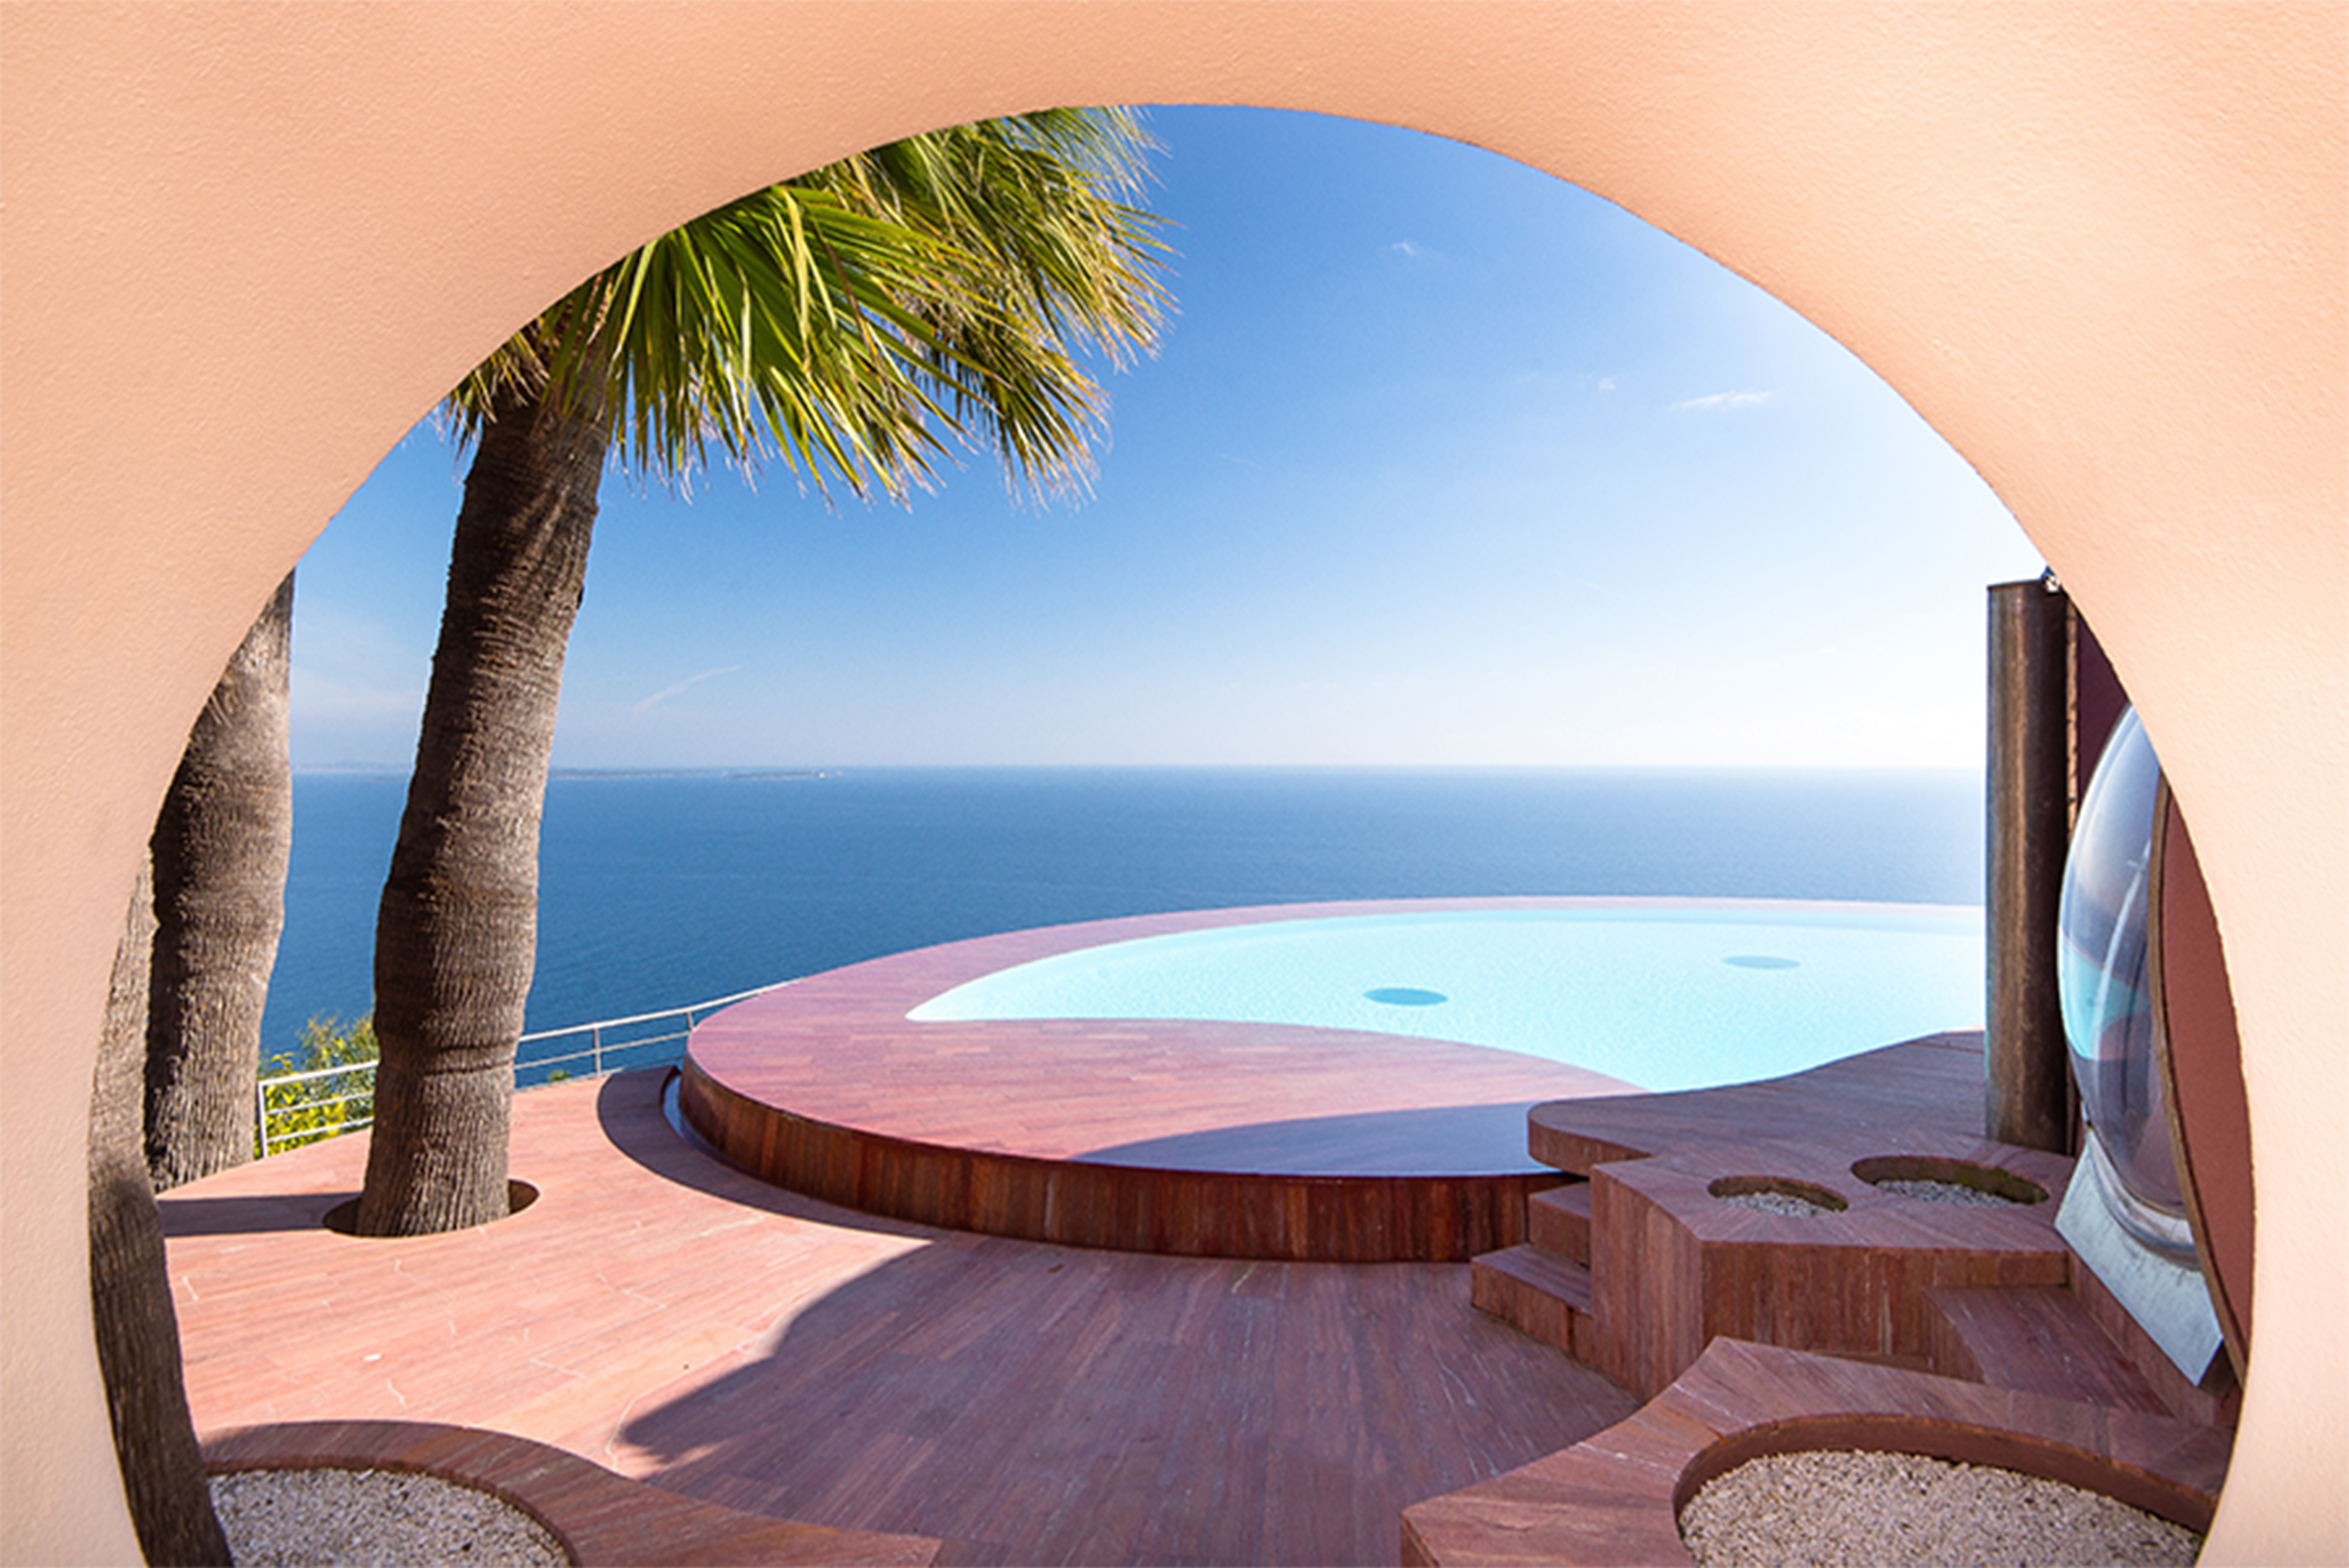 The Bubble House has multiple round swimming pools, one of which is an infinity pool that offers breathtaking views of the Bay of Cannes.